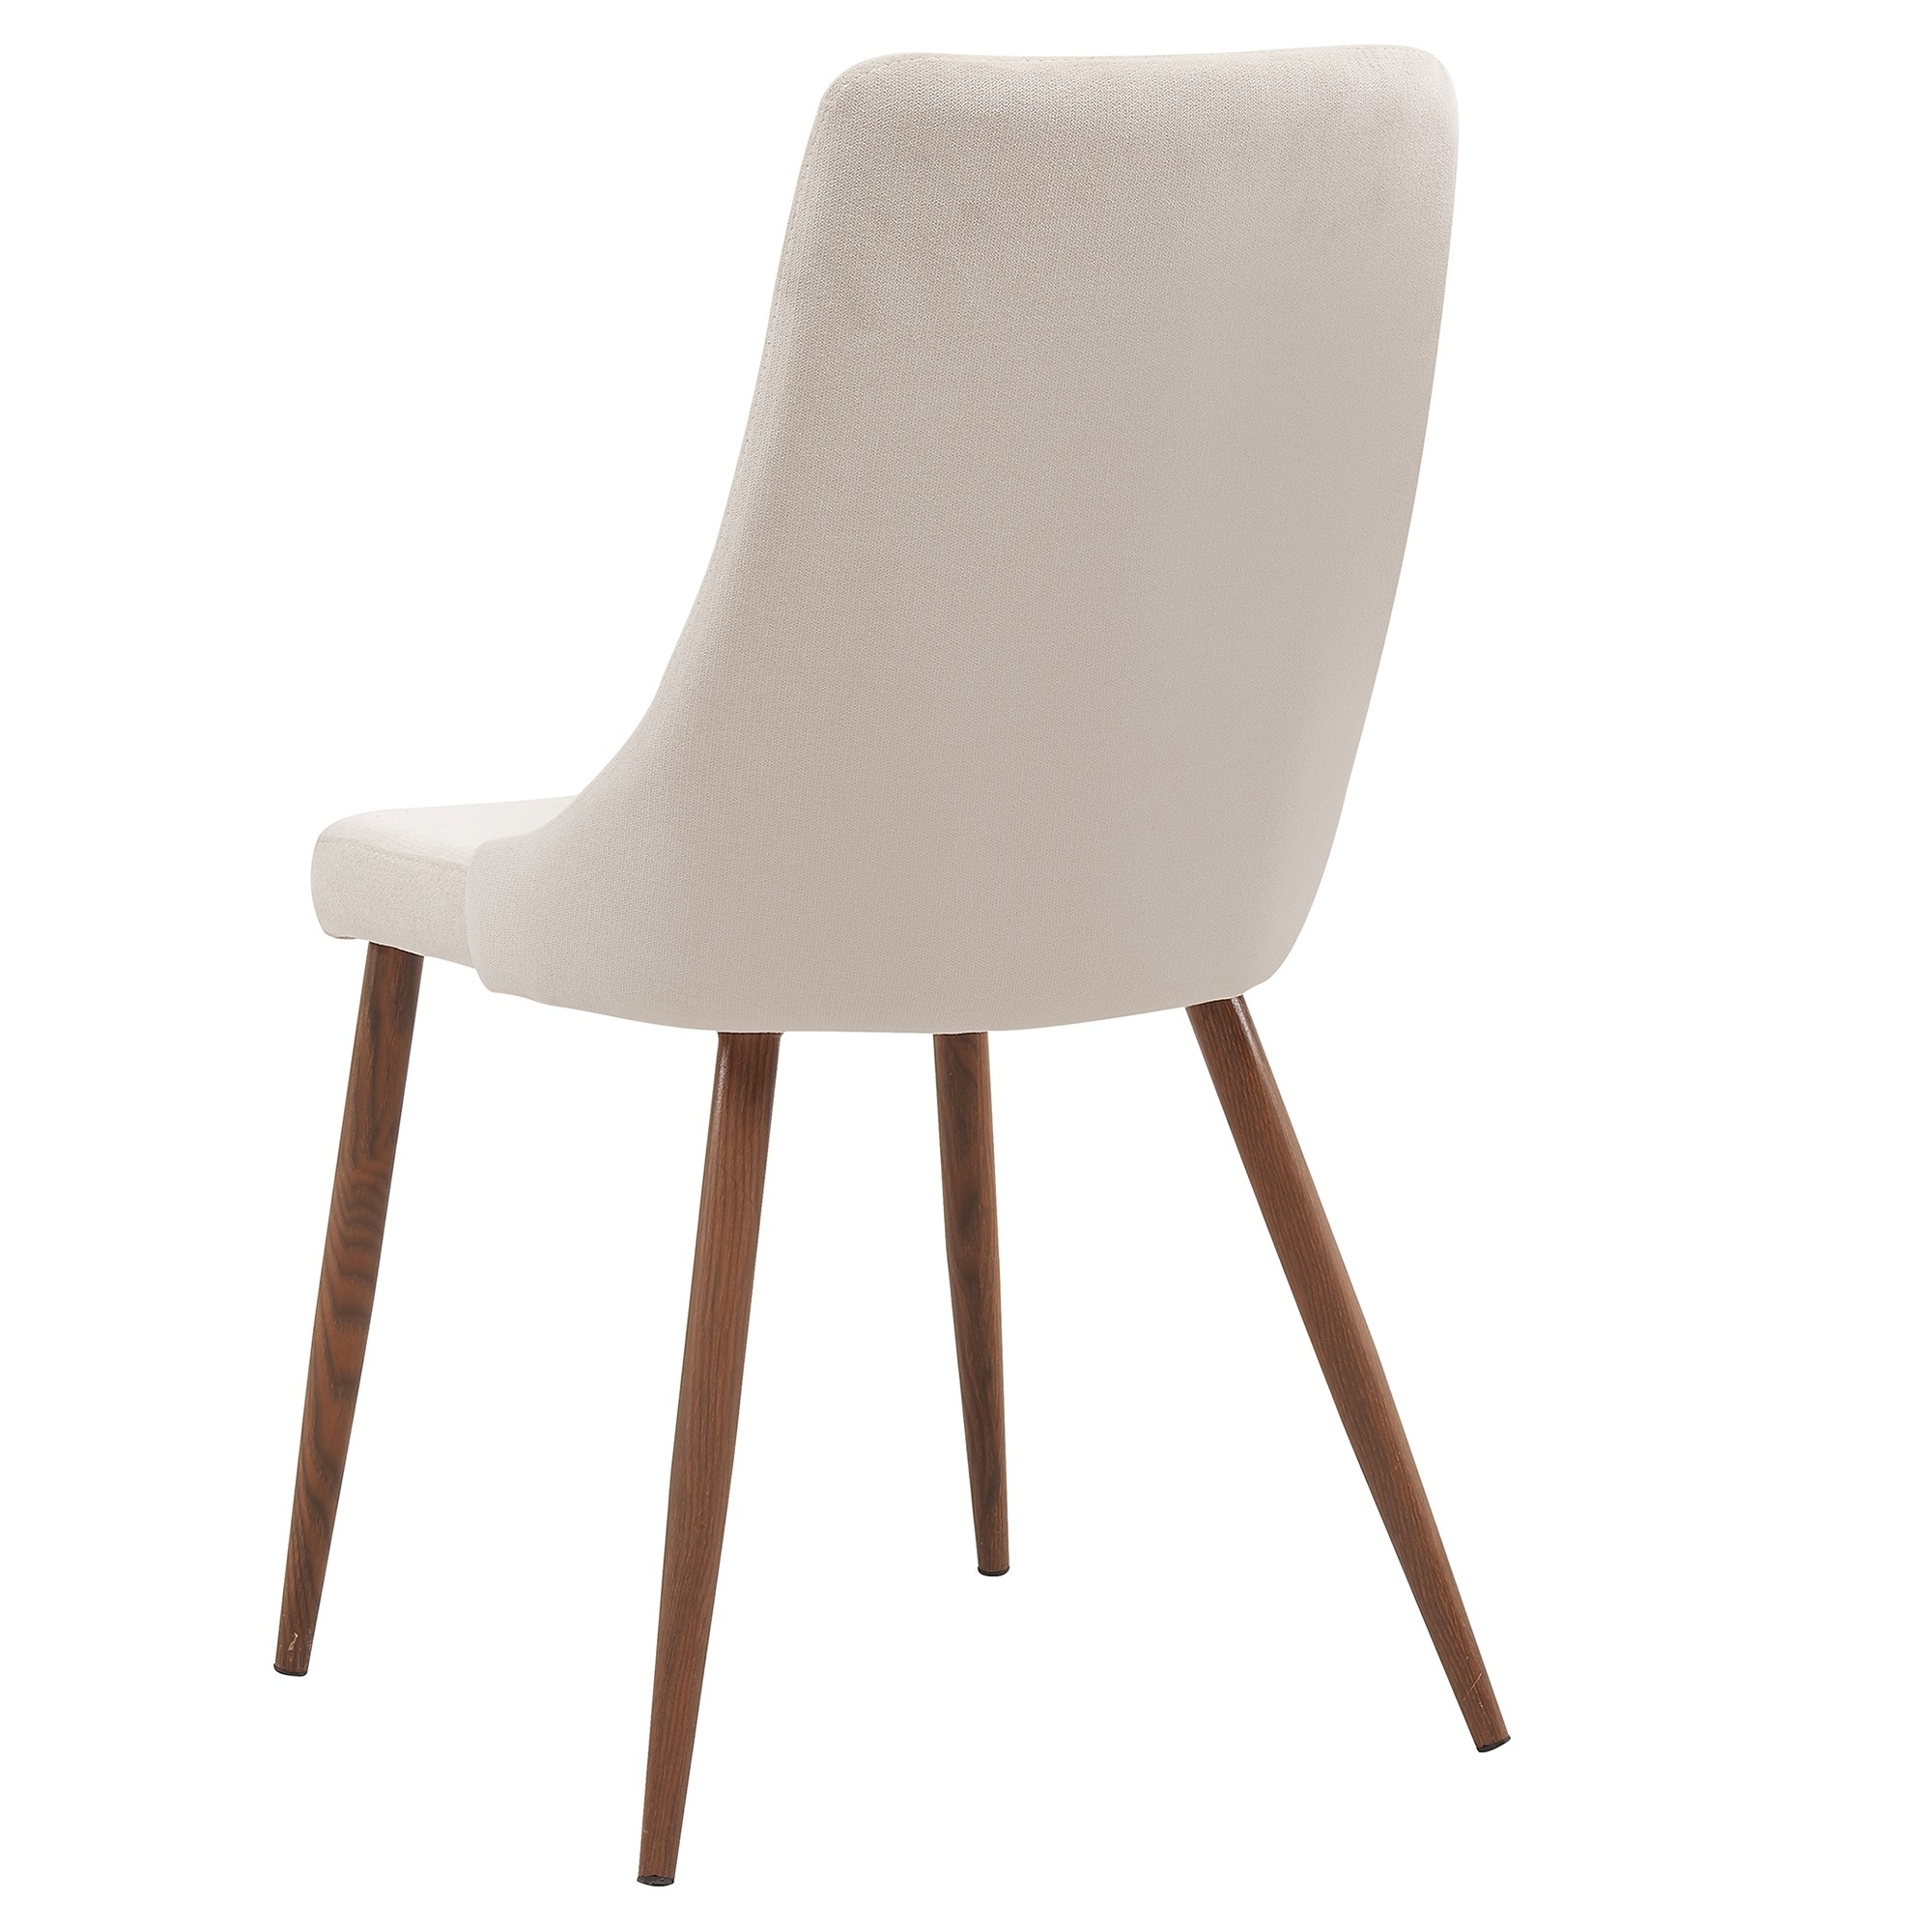 Cora Side Chairs For Recent Cora Side Chair In Beige (View 7 of 20)